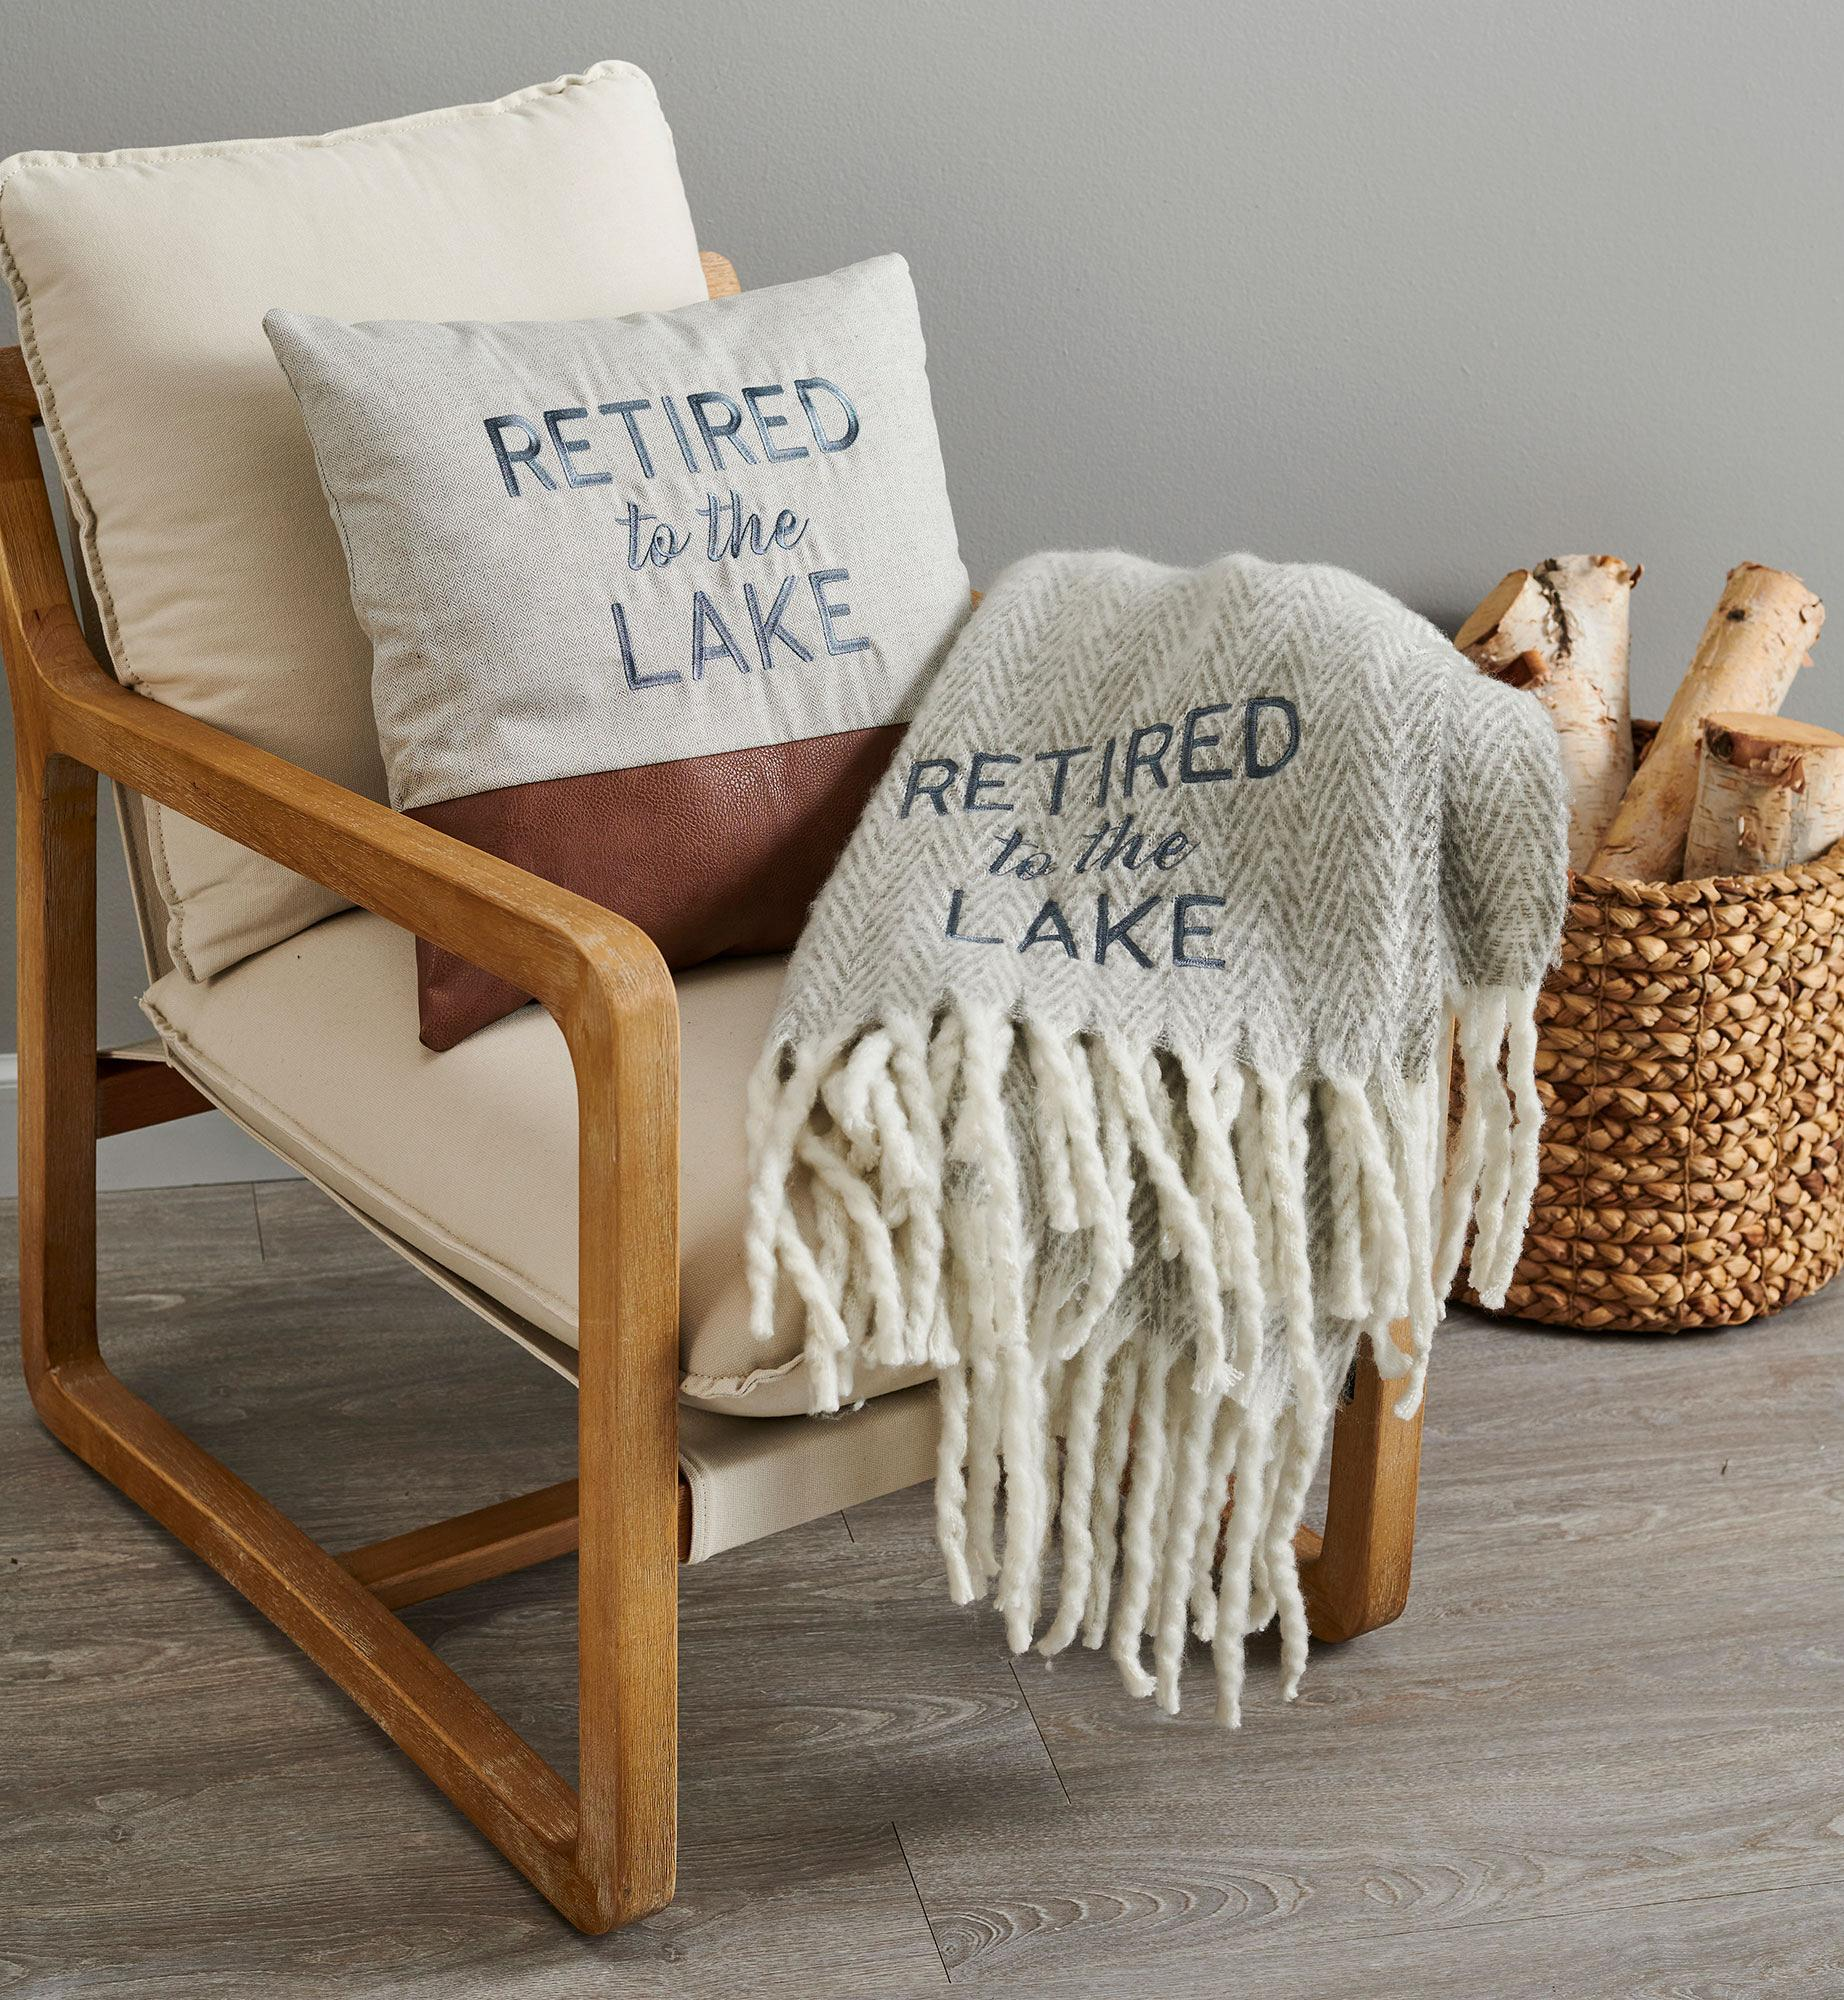 Retired to the Lake Throw and Pillow